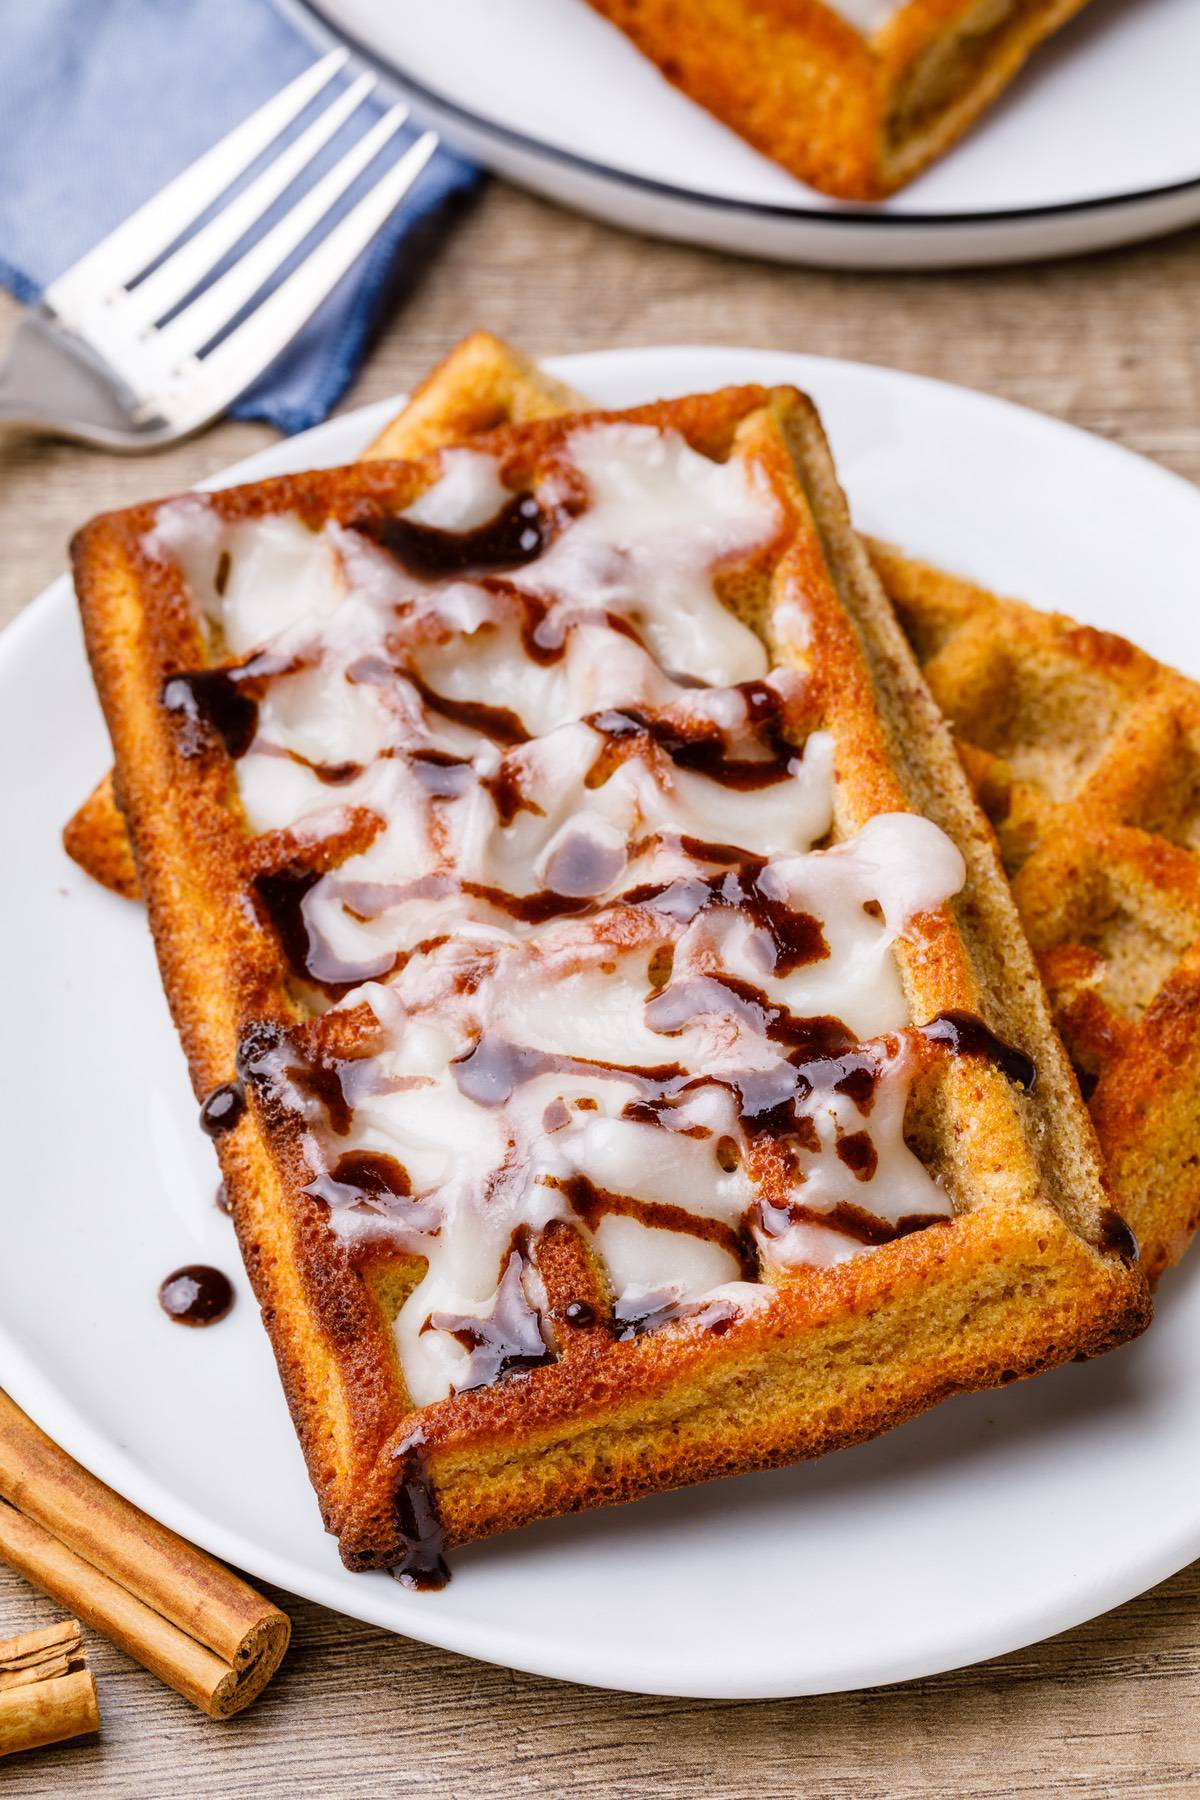 Home.fit cinnamon-roll-paleo-waffles-7 Crave-worthy Cinnamon Roll Paleo Waffles